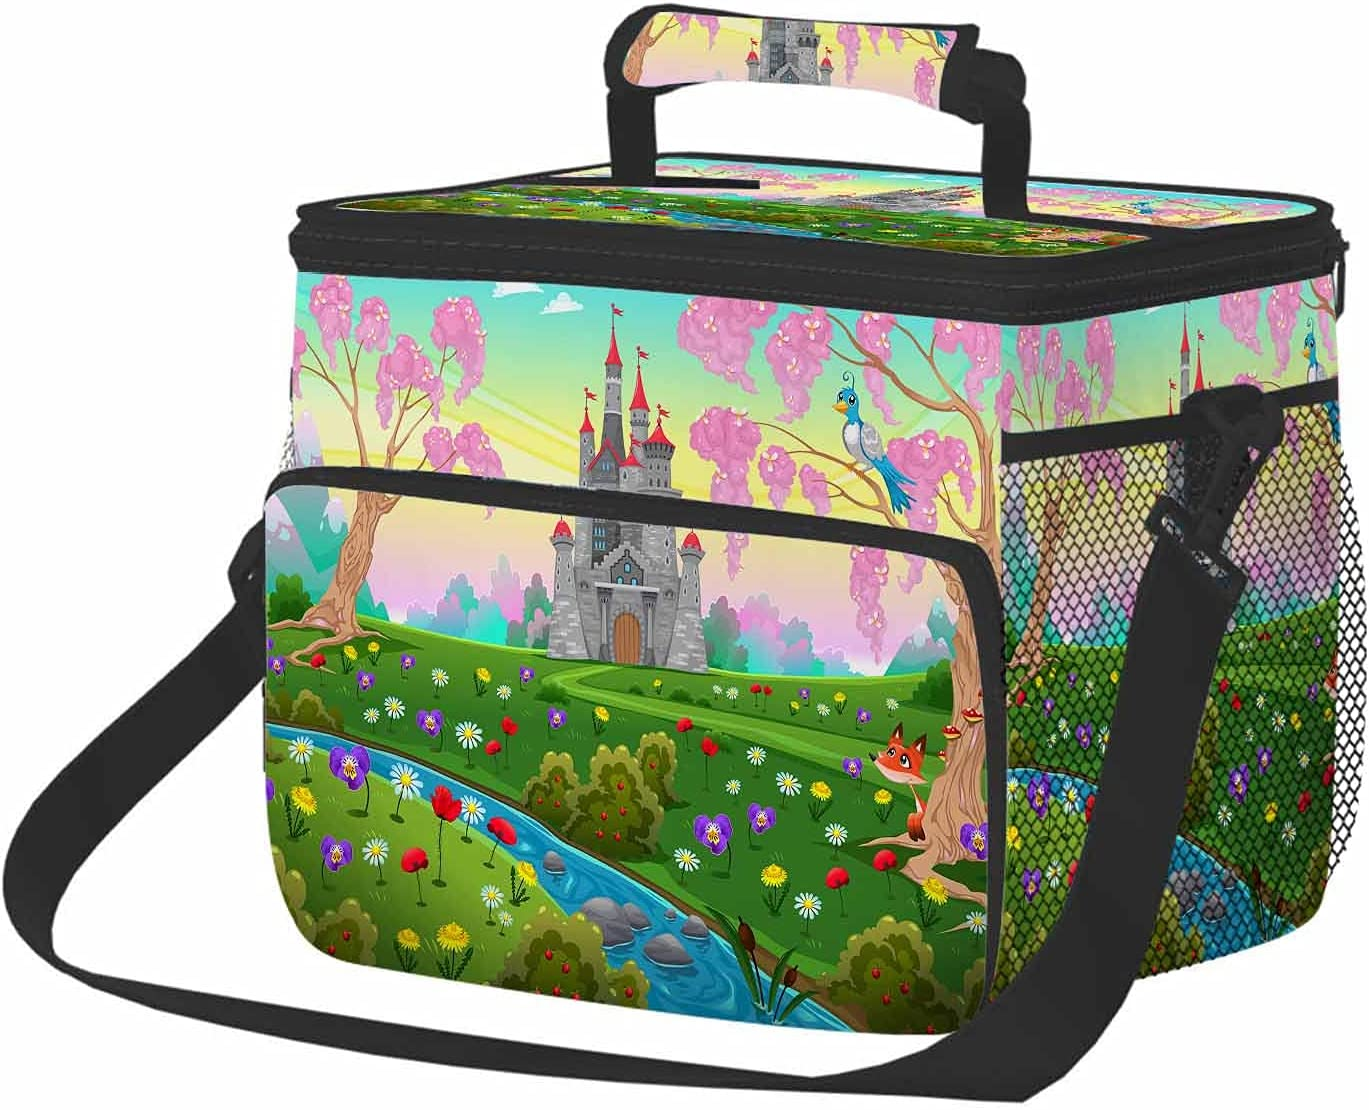 Beabes Fairytale Castle Insulated Tampa Mall Cooler Lunch Castl wholesale Cartoon Bag